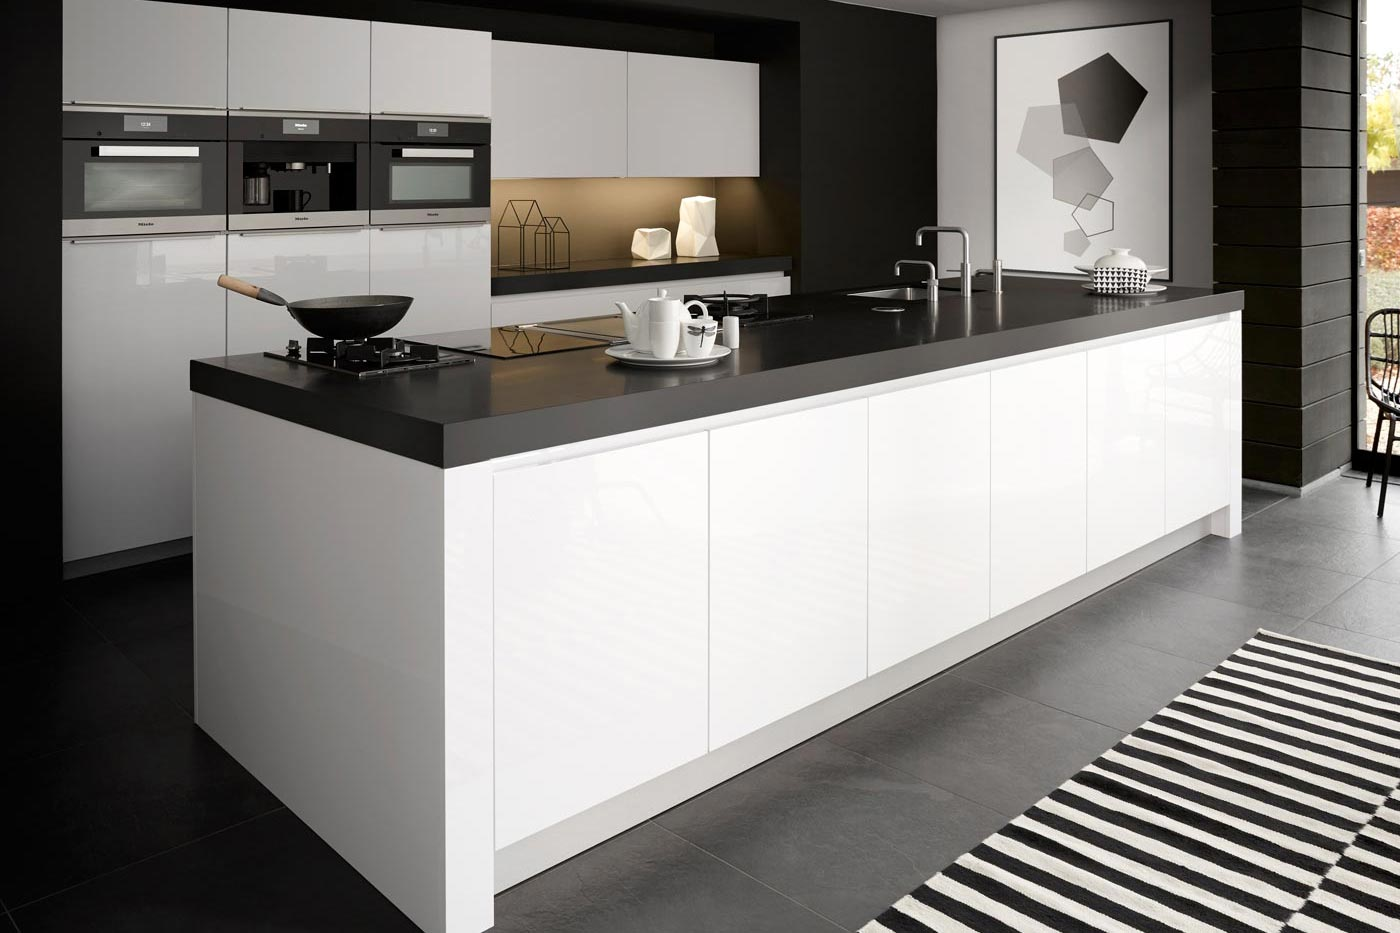 Häcker Küchen Hausmesse 2018 Dutch Brand Keller Kitchens To Feature At Kbb Birmingham